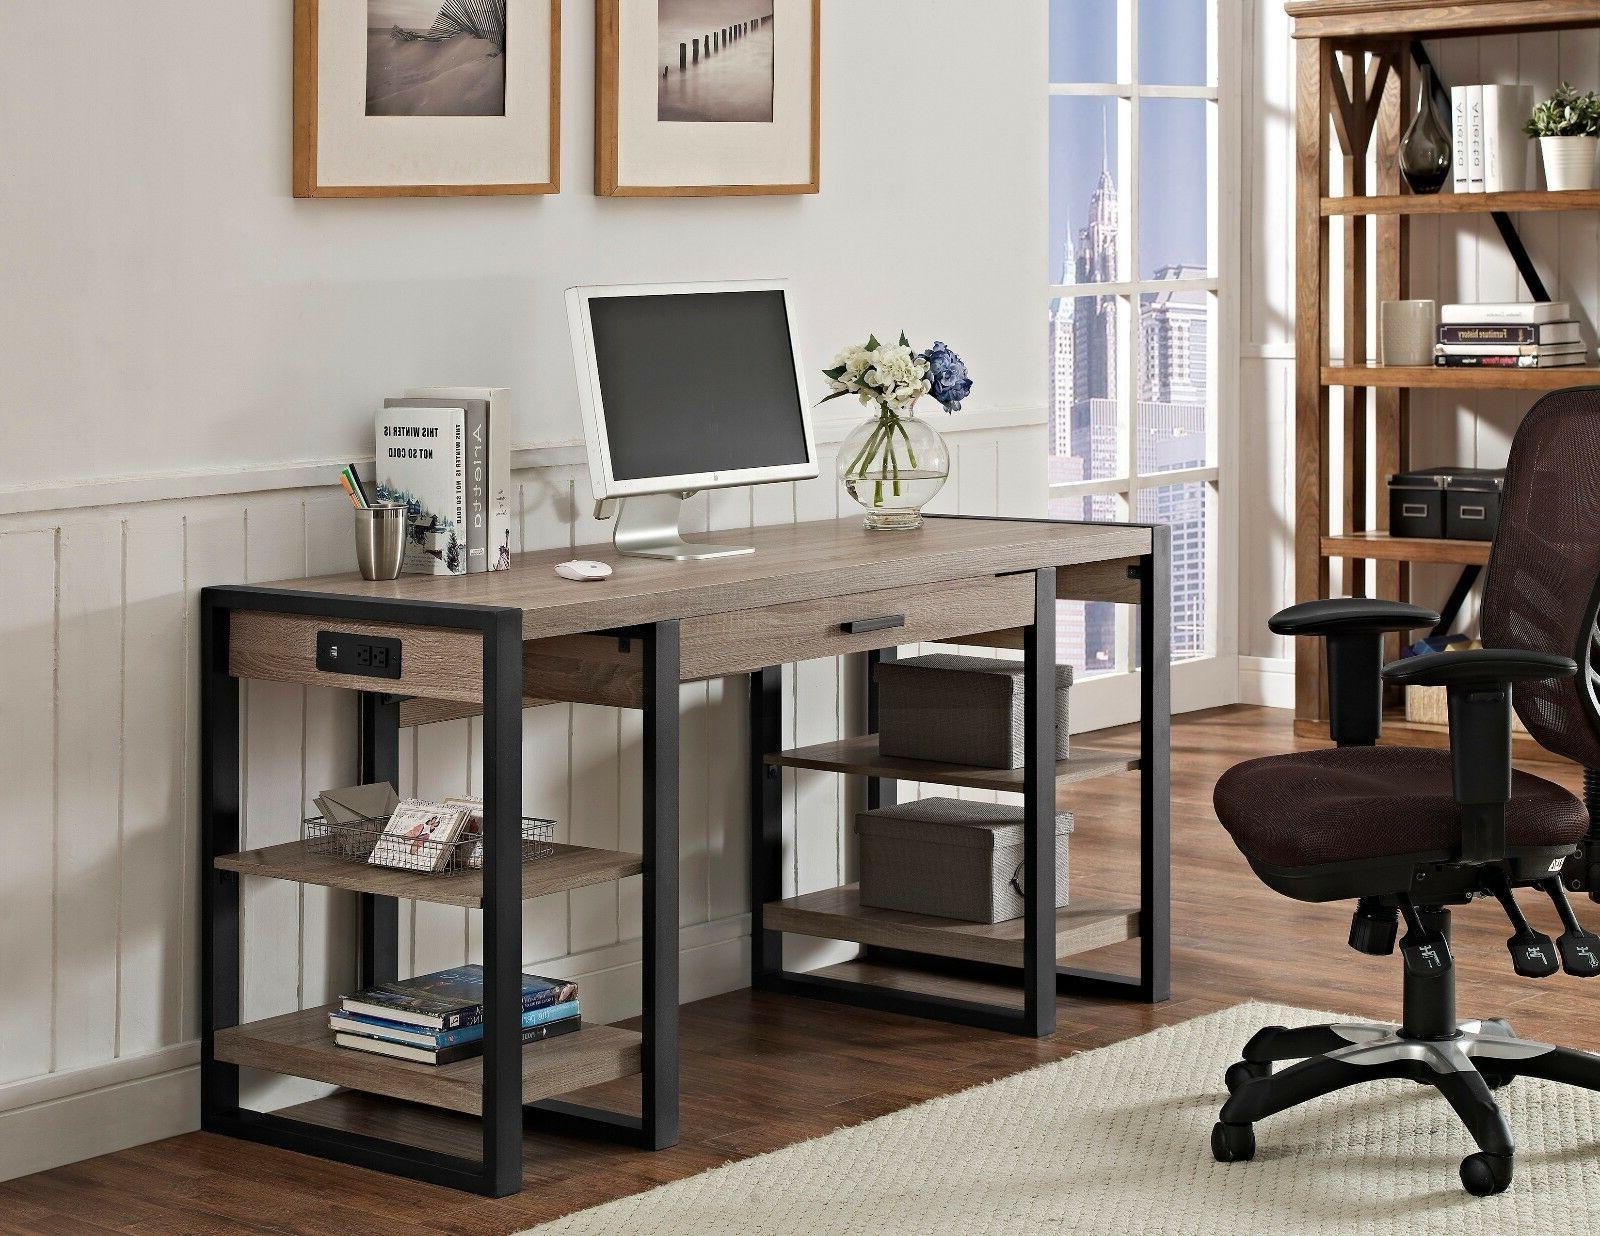 New Home Office Inch in Driftwood Finish